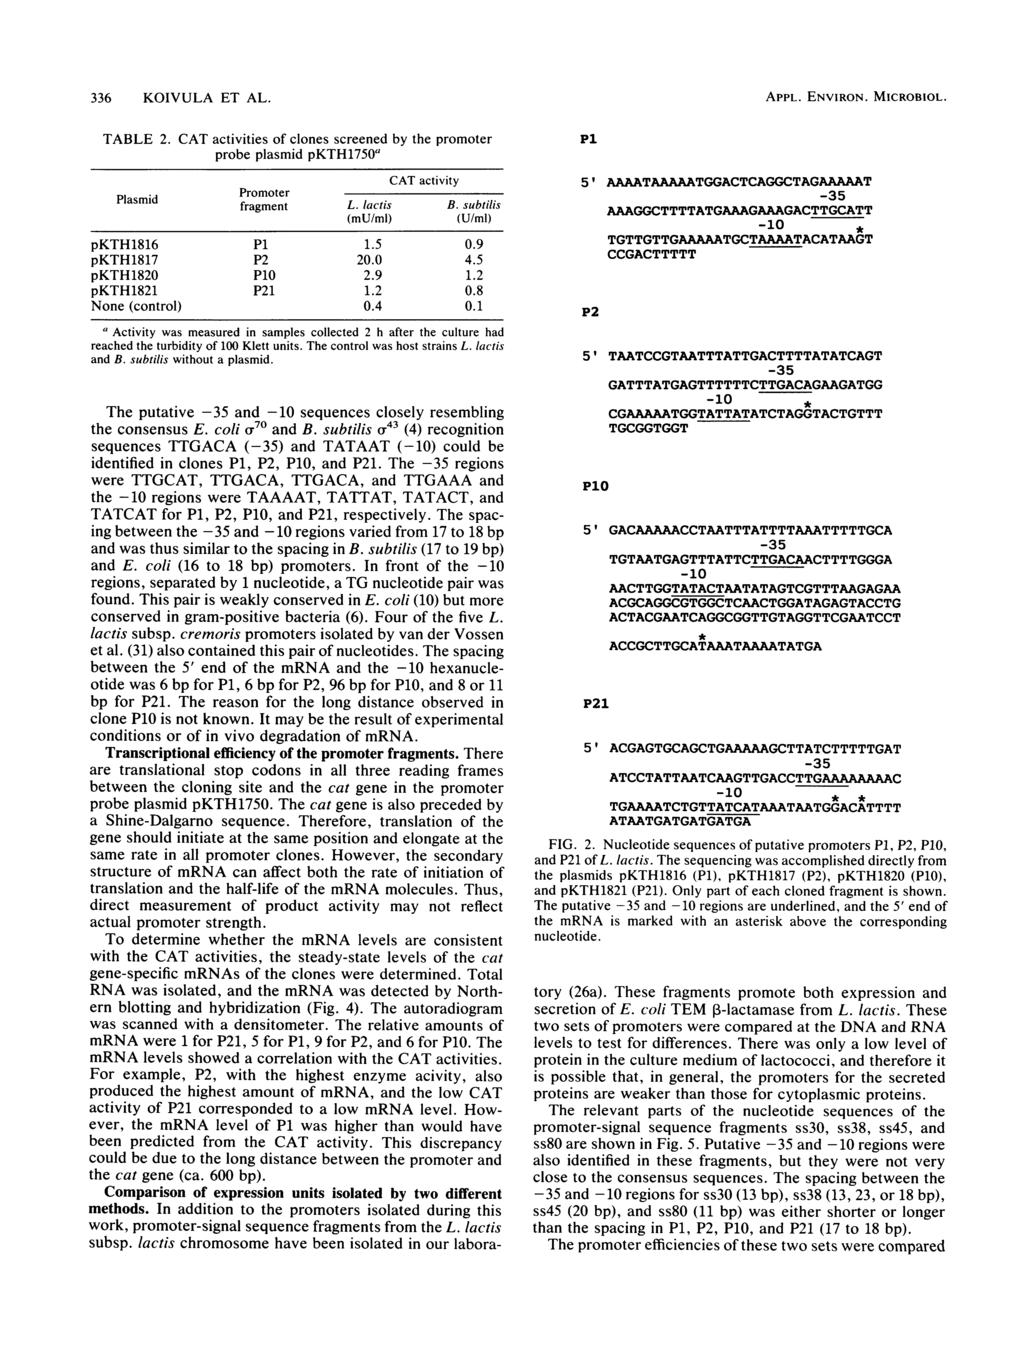 336 KOIVULA ET AL. TABLE 2. Plasmid CAT activities of clones screened by the promoter probe plasmid pkth1750a CAT activity Promoter fragment L. lactis B. subtilis (mu/ml) (U/mi) pkth1816 P1 1.5 0.